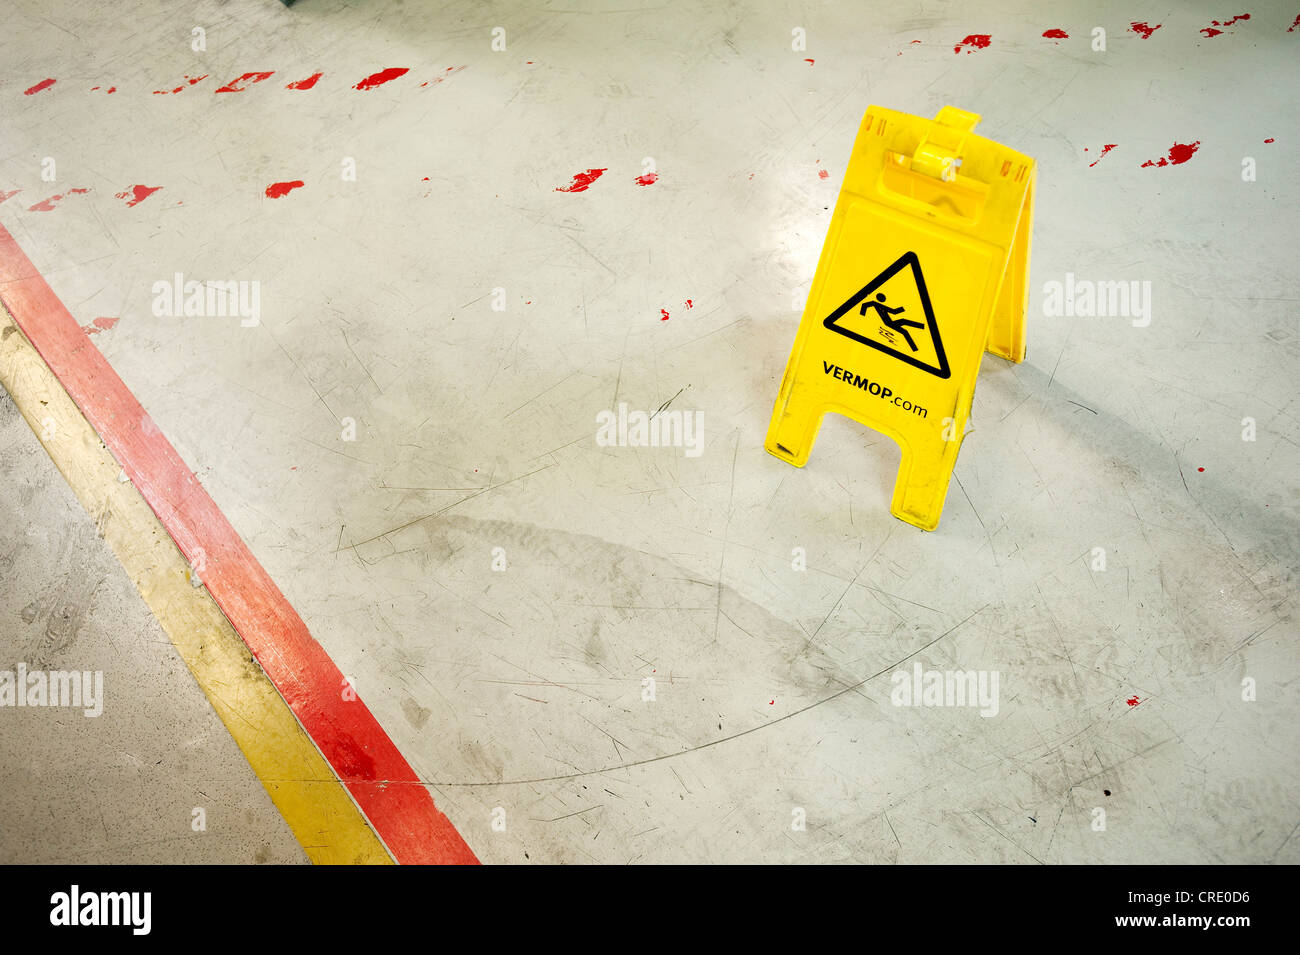 Caution slippery, VERMOP warning sign - Stock Image